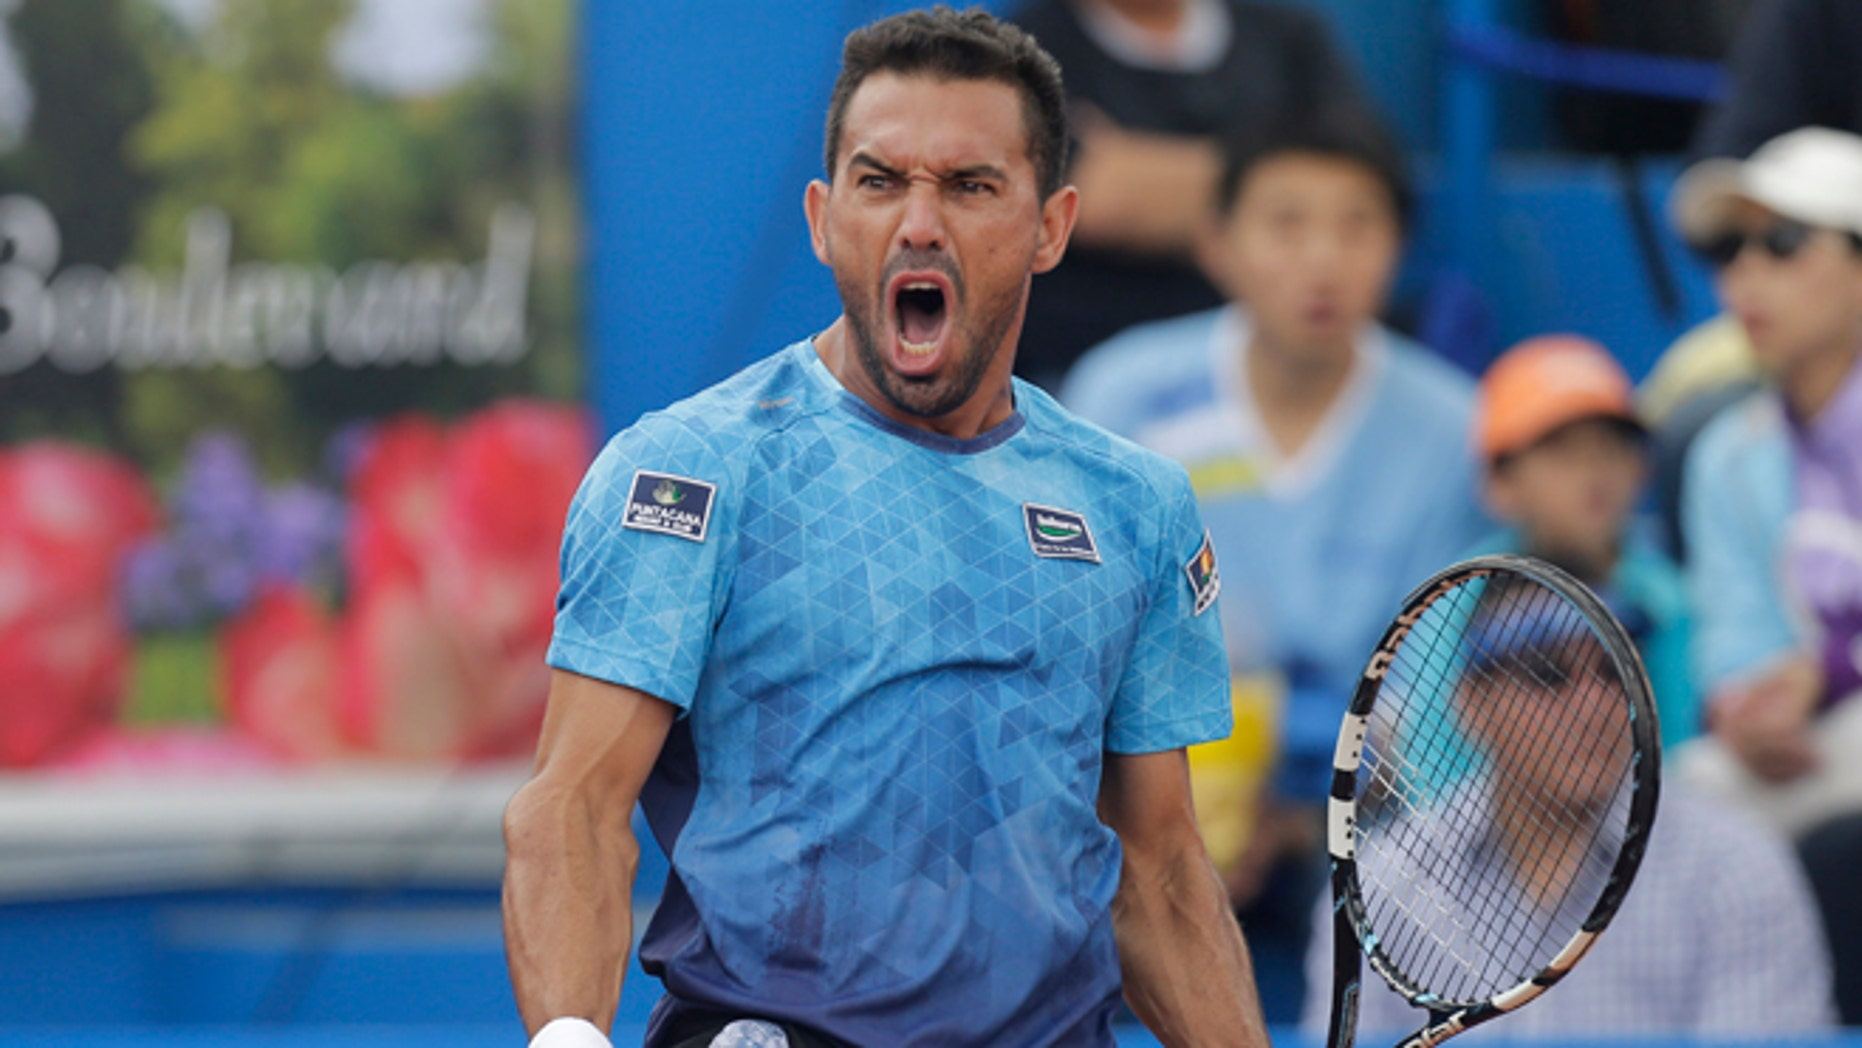 Victor Estrella from the Dominican Republic celebrates a winning a point against Spain's Feliciano Lopez in the final match of the ATP World Tour Ecuador Open Quito tournament, in Quito, Ecuador, Sunday, Feb. 8, 2015. Estrella became the oldest first-time winner of an ATP event in the Open Era, beating top-seeded Lopez. The 34-year-old Dominican won 6-2, 6-7 (5), 7-6 (5) in his first ATP final. He was the first Dominican to reach a top-level ATP final. (AP Photo/Dolores Ochoa)